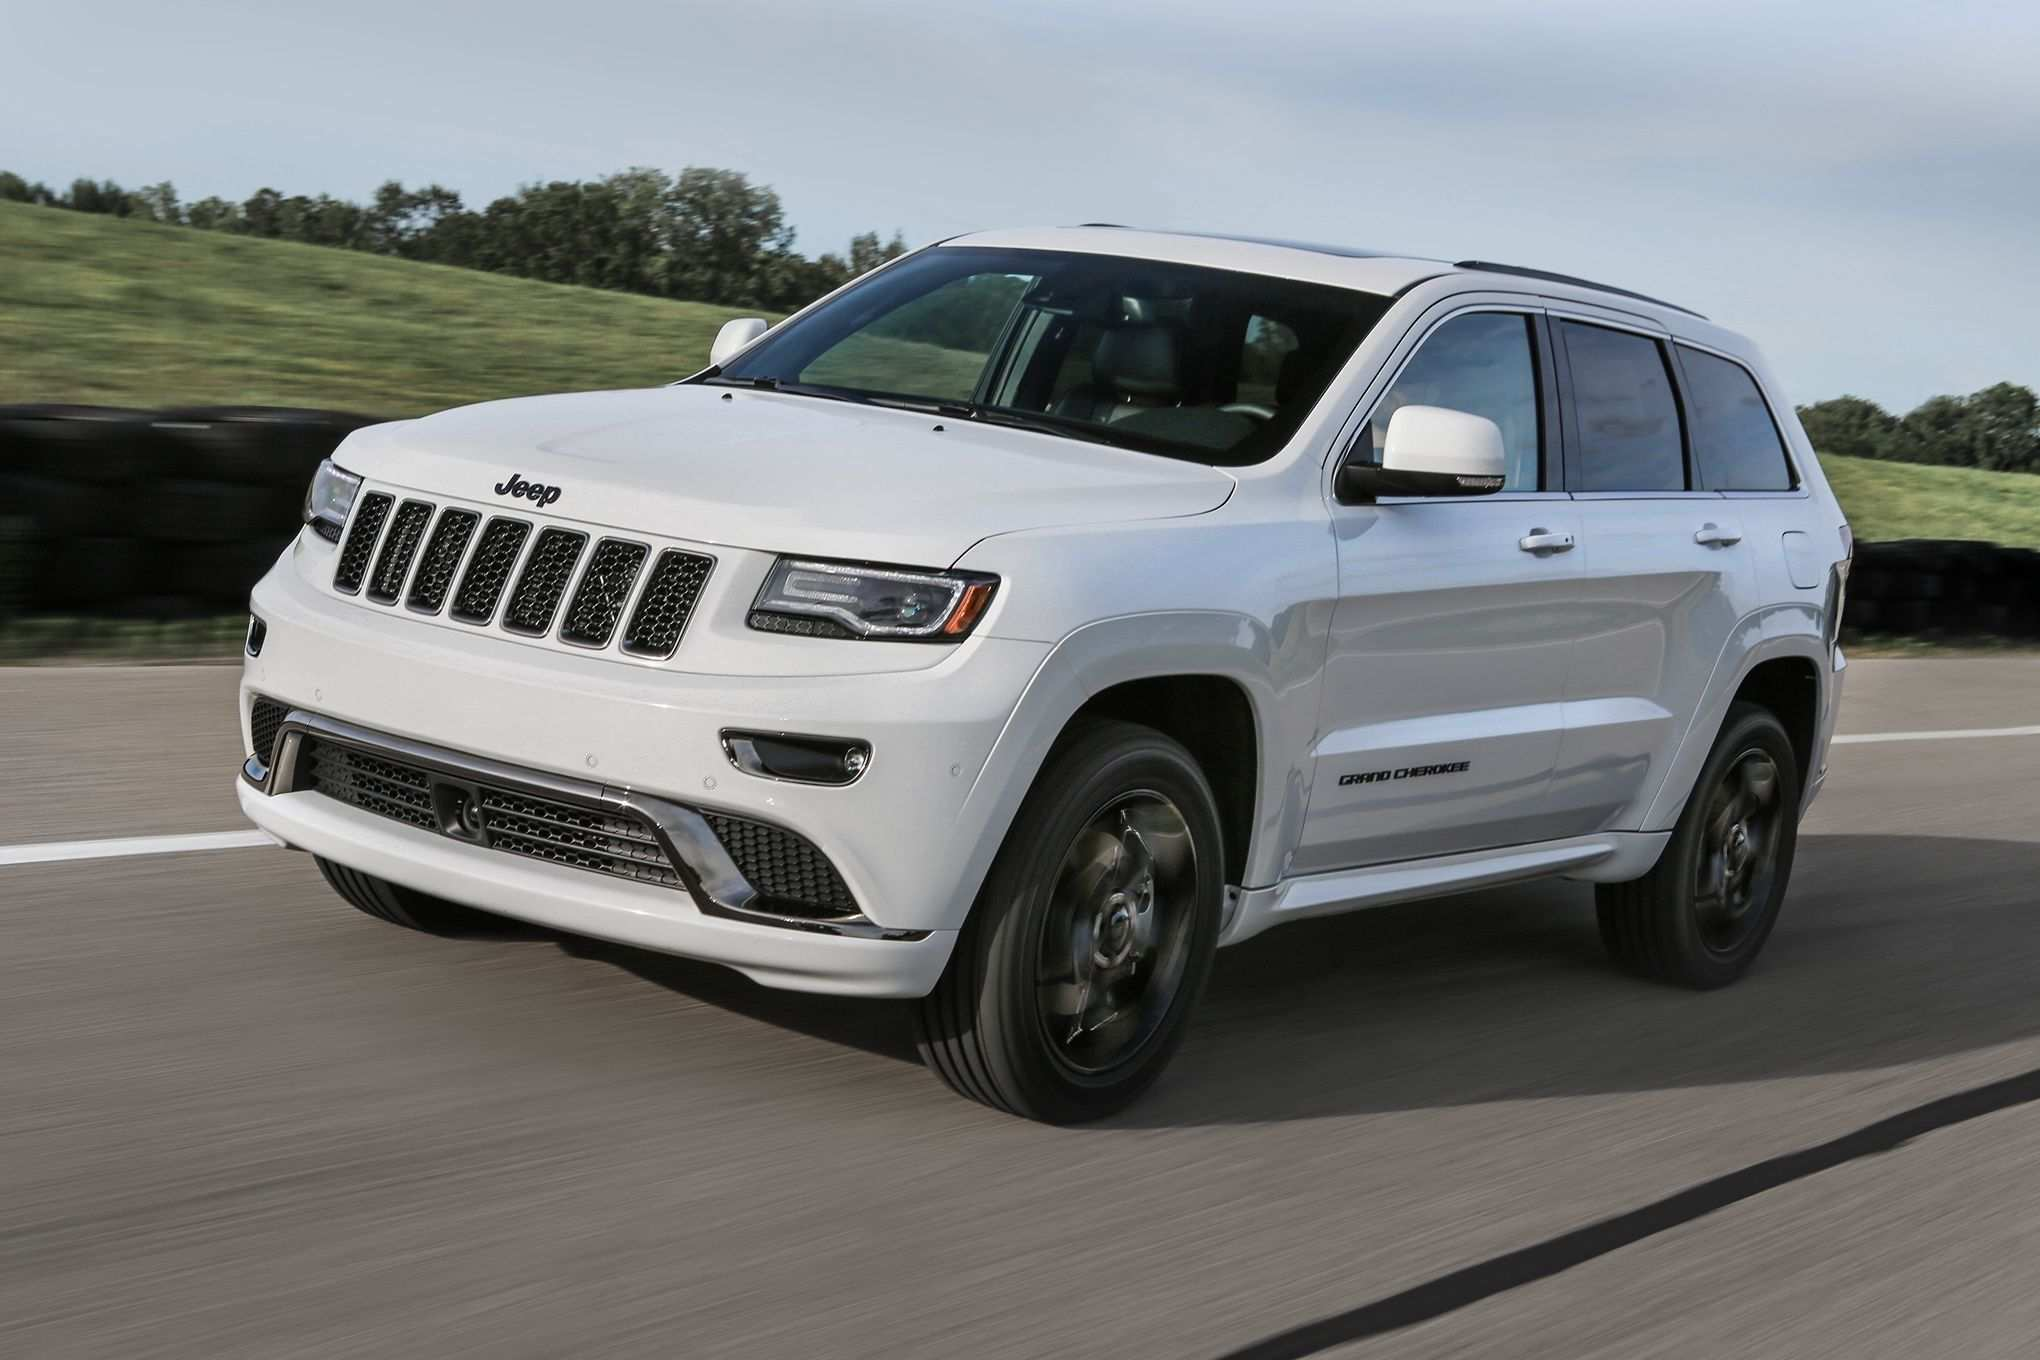 87 Great 2019 Jeep Mpg Model by 2019 Jeep Mpg